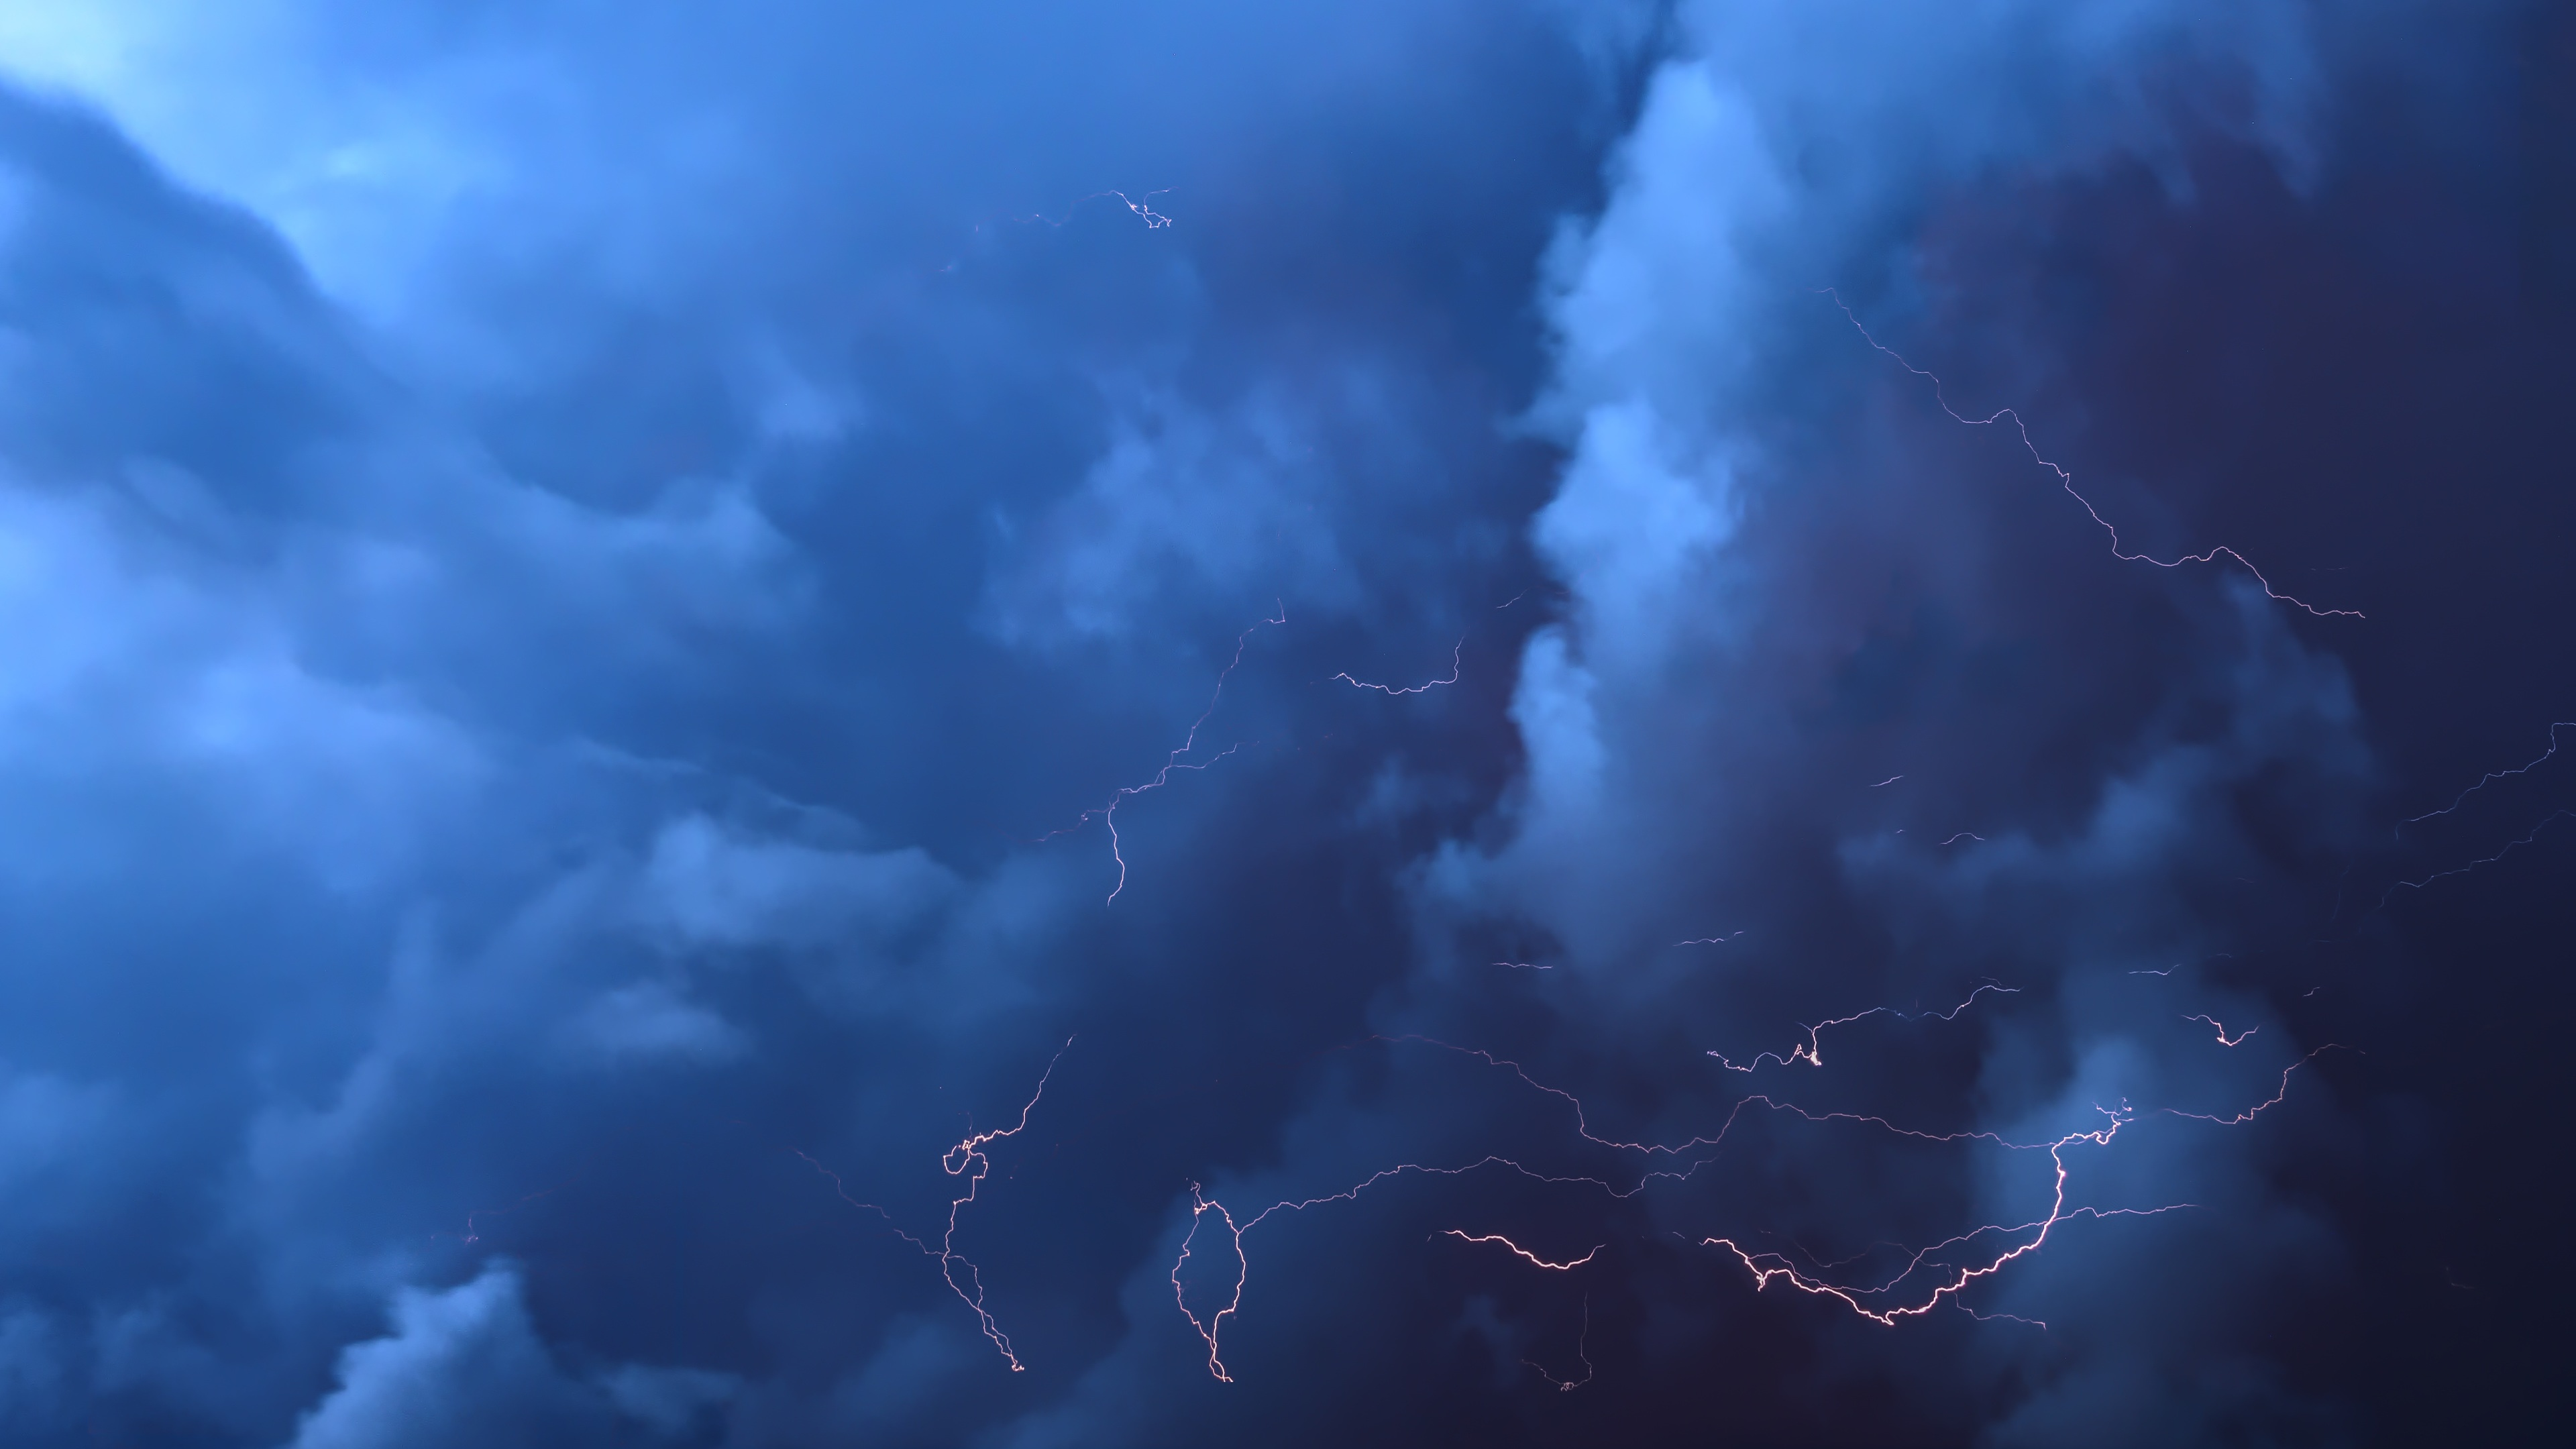 thunderstorm 5k 1540141529 - Thunderstorm 5k - thunderstorm wallpapers, nature wallpapers, lightning wallpapers, hd-wallpapers, 5k wallpapers, 4k-wallpapers